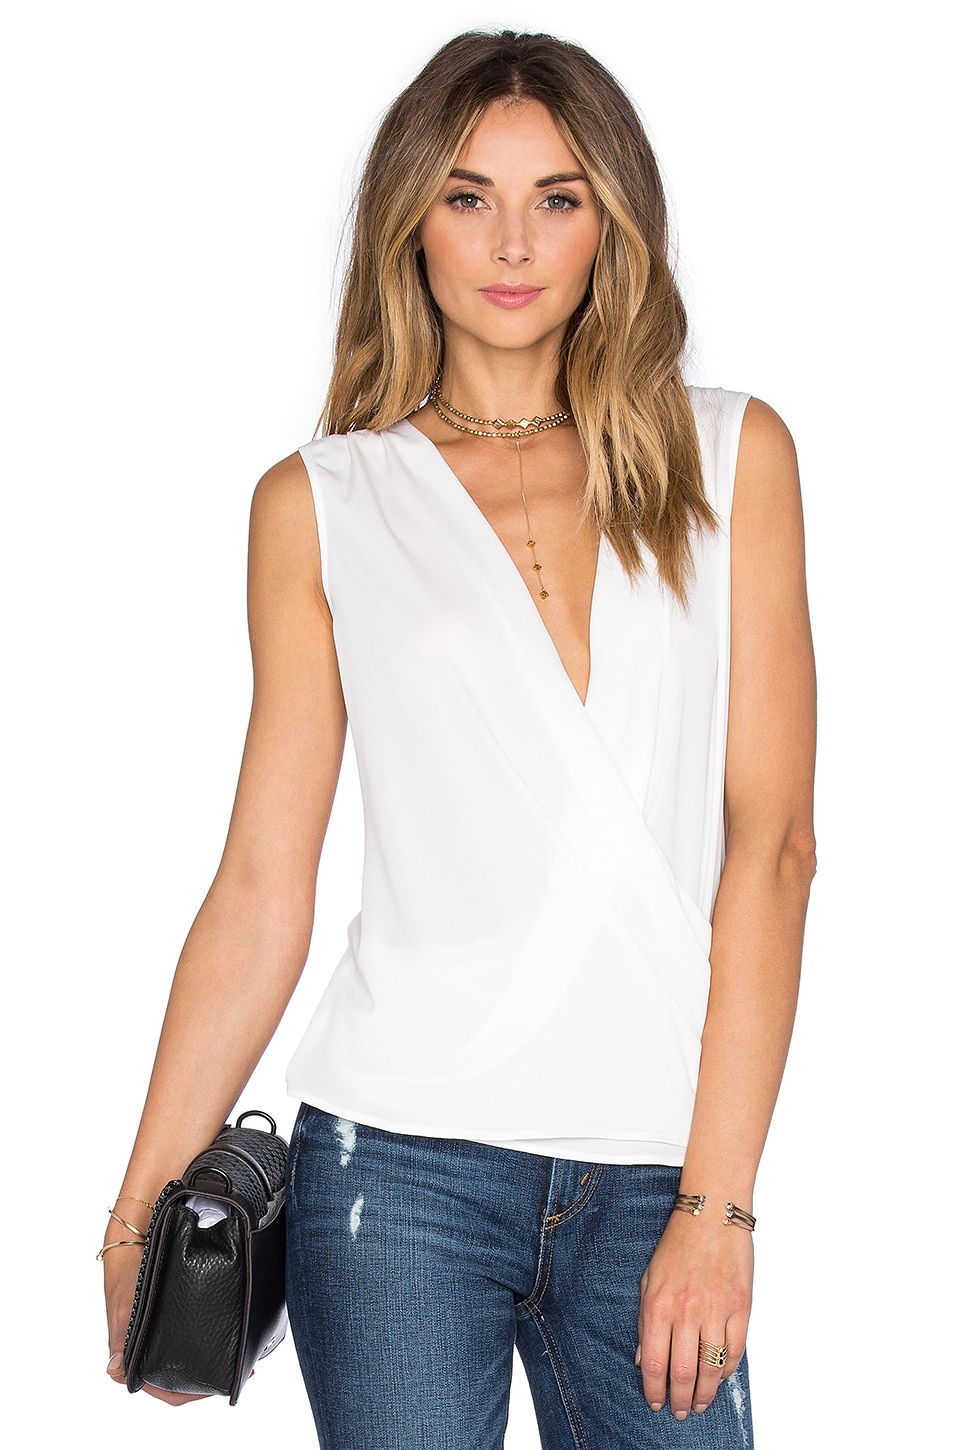 L'Academie The Wrap Blouse in White